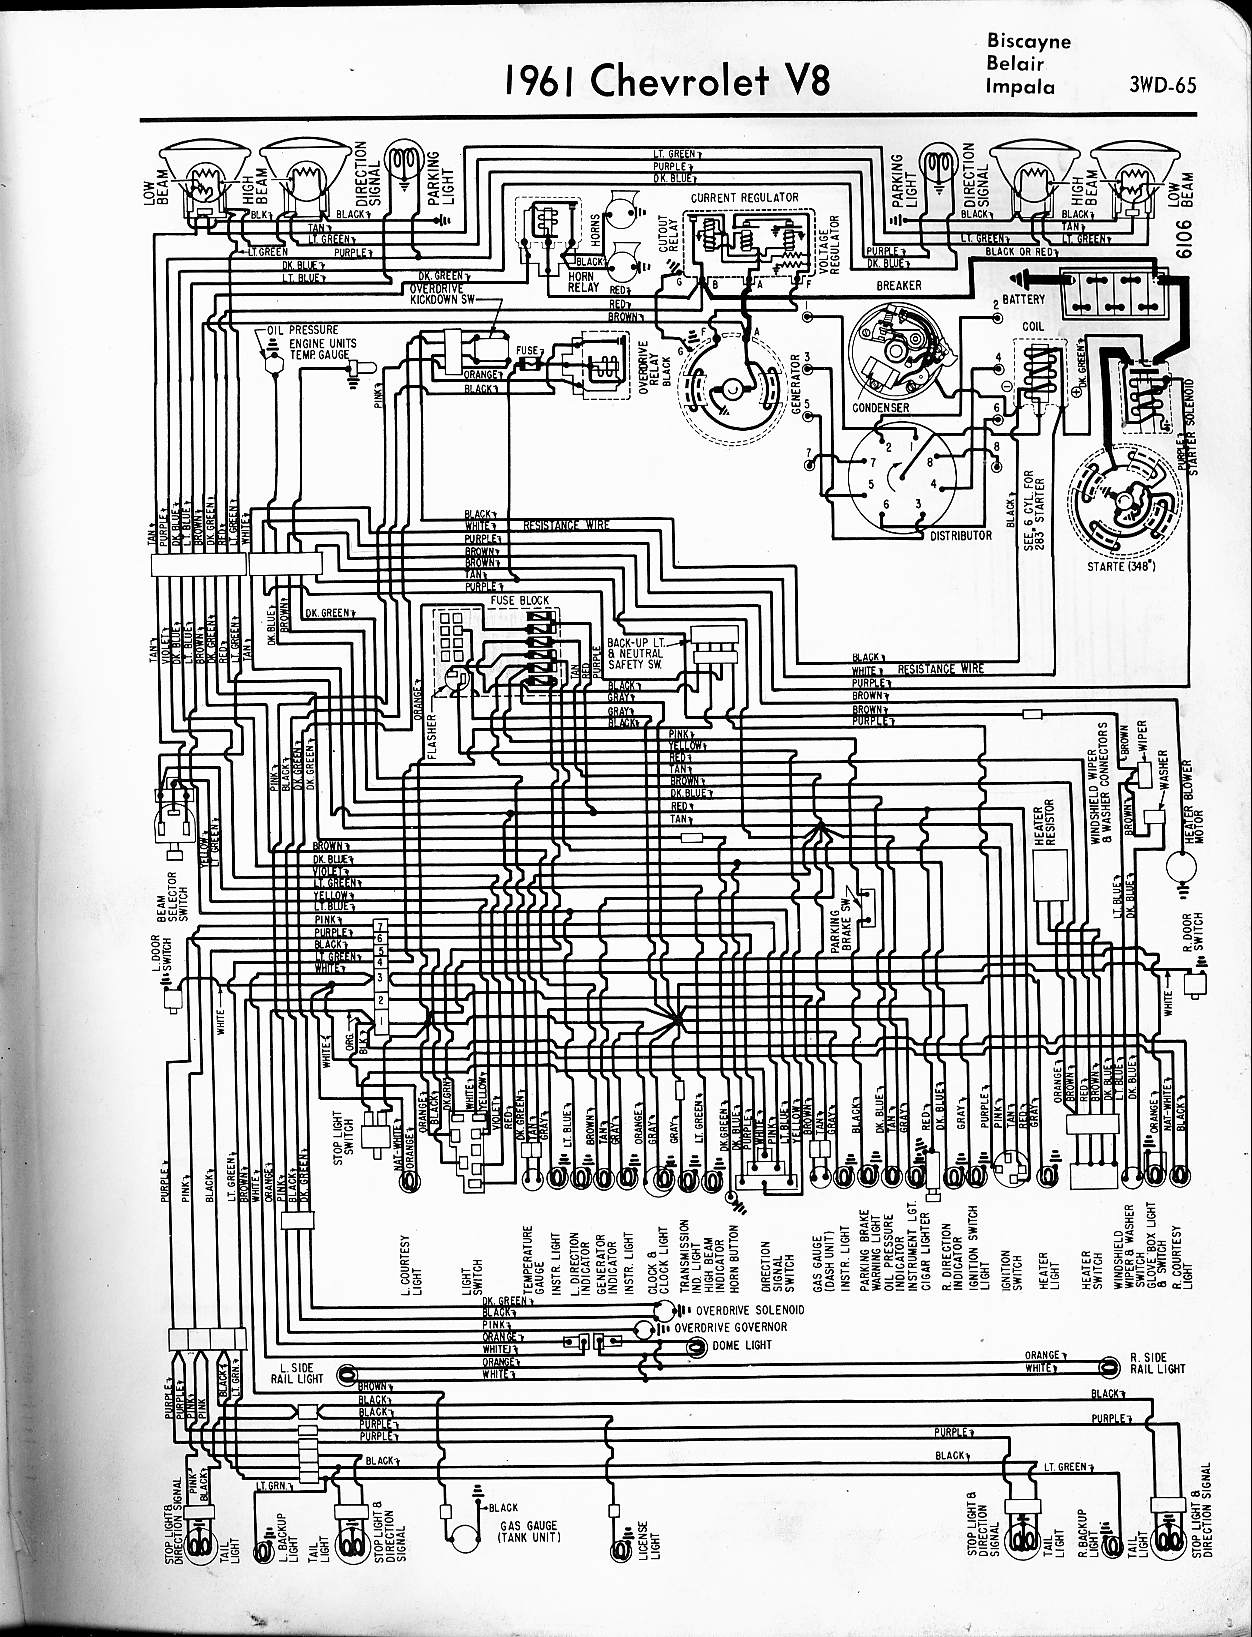 MWireChev61_3WD 065 2002 impala wiring diagram 2002 chevy impala bcm diagram \u2022 free 1964 impala wiring diagram for ignition at webbmarketing.co